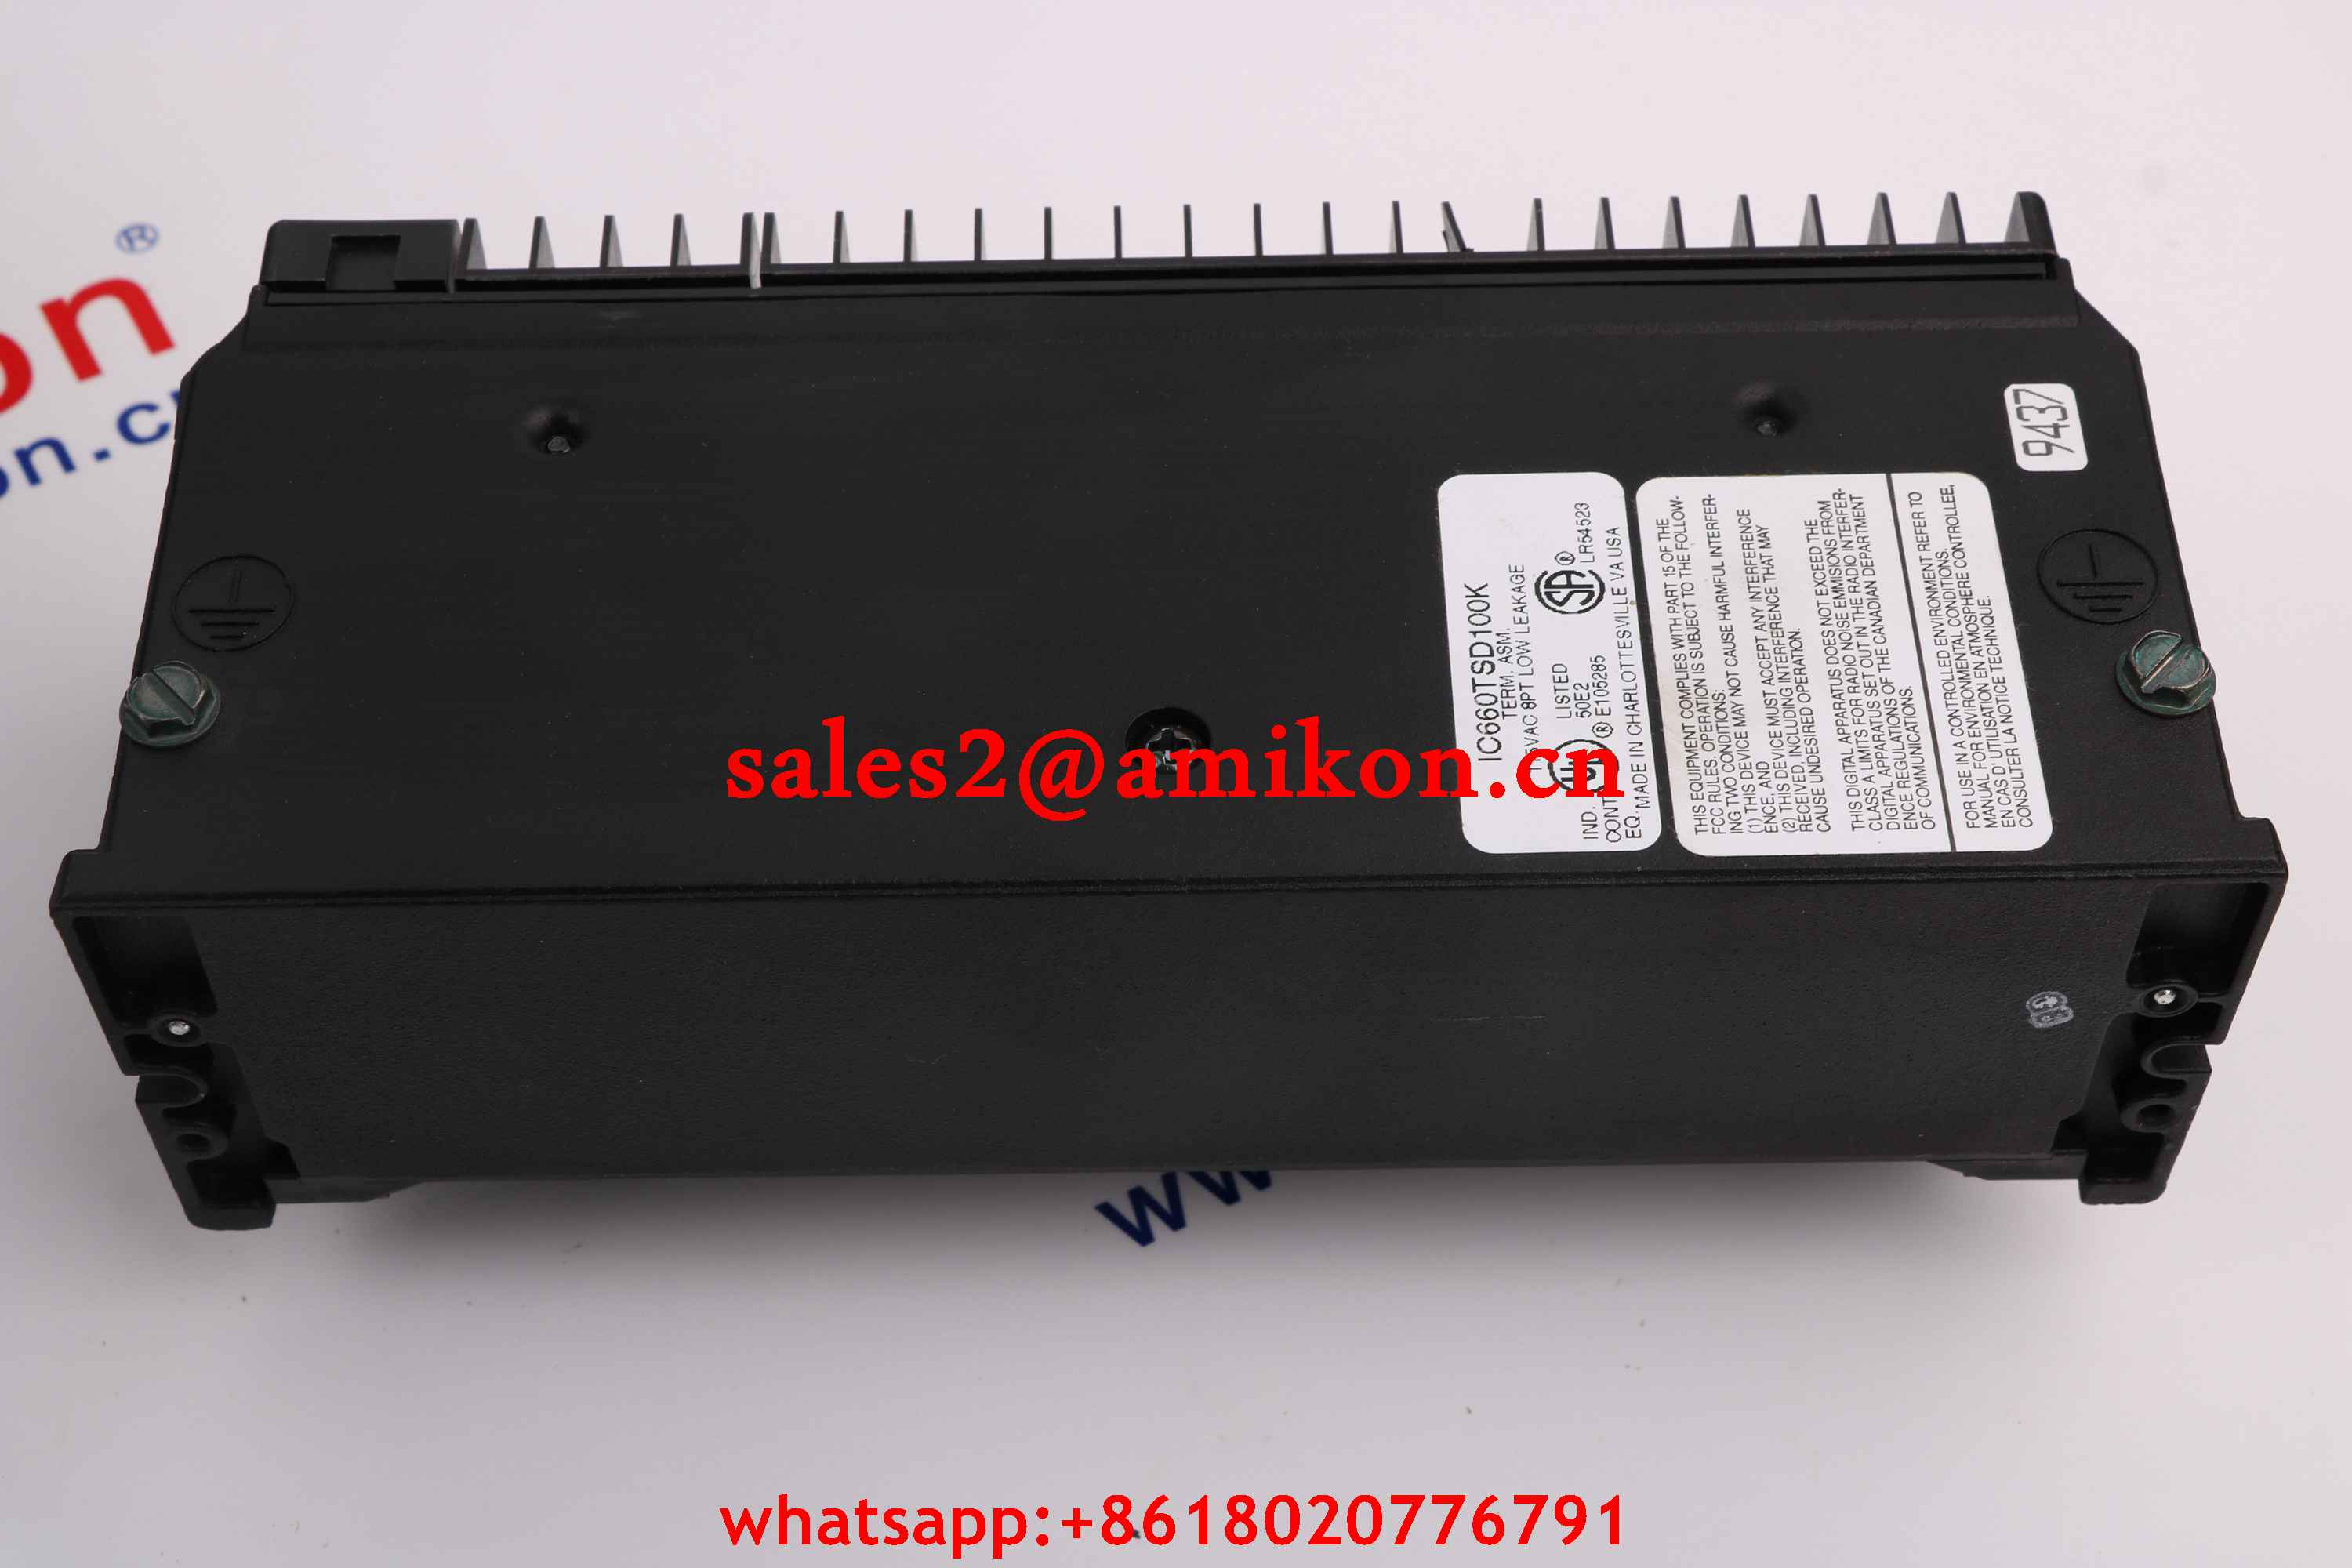 GE FANUC DS200CVMAG3AEB  new and Original USA 1 year warranty